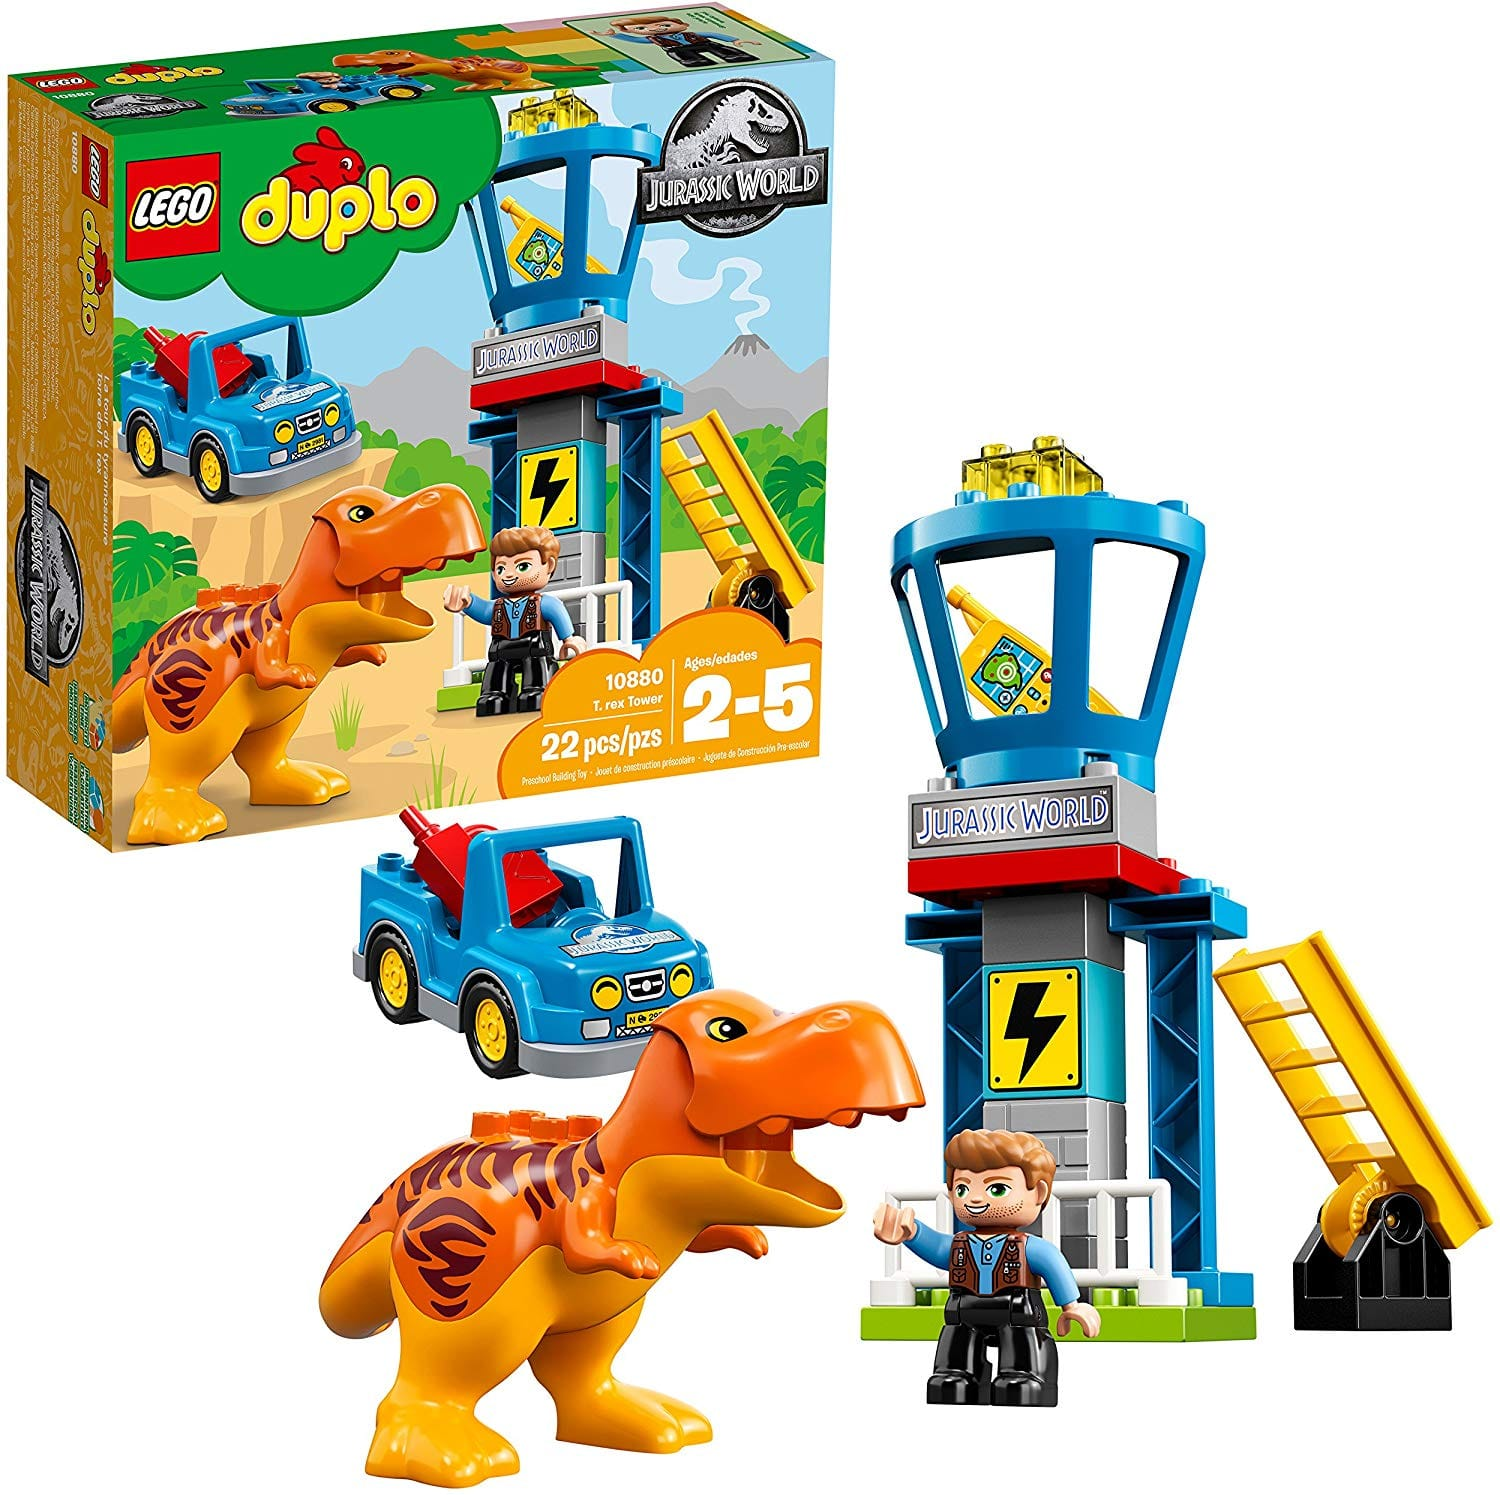 LEGO DUPLO Jurassic World T. Rex Tower 10880 Building Kit 22 Pieces $15.03 + ship